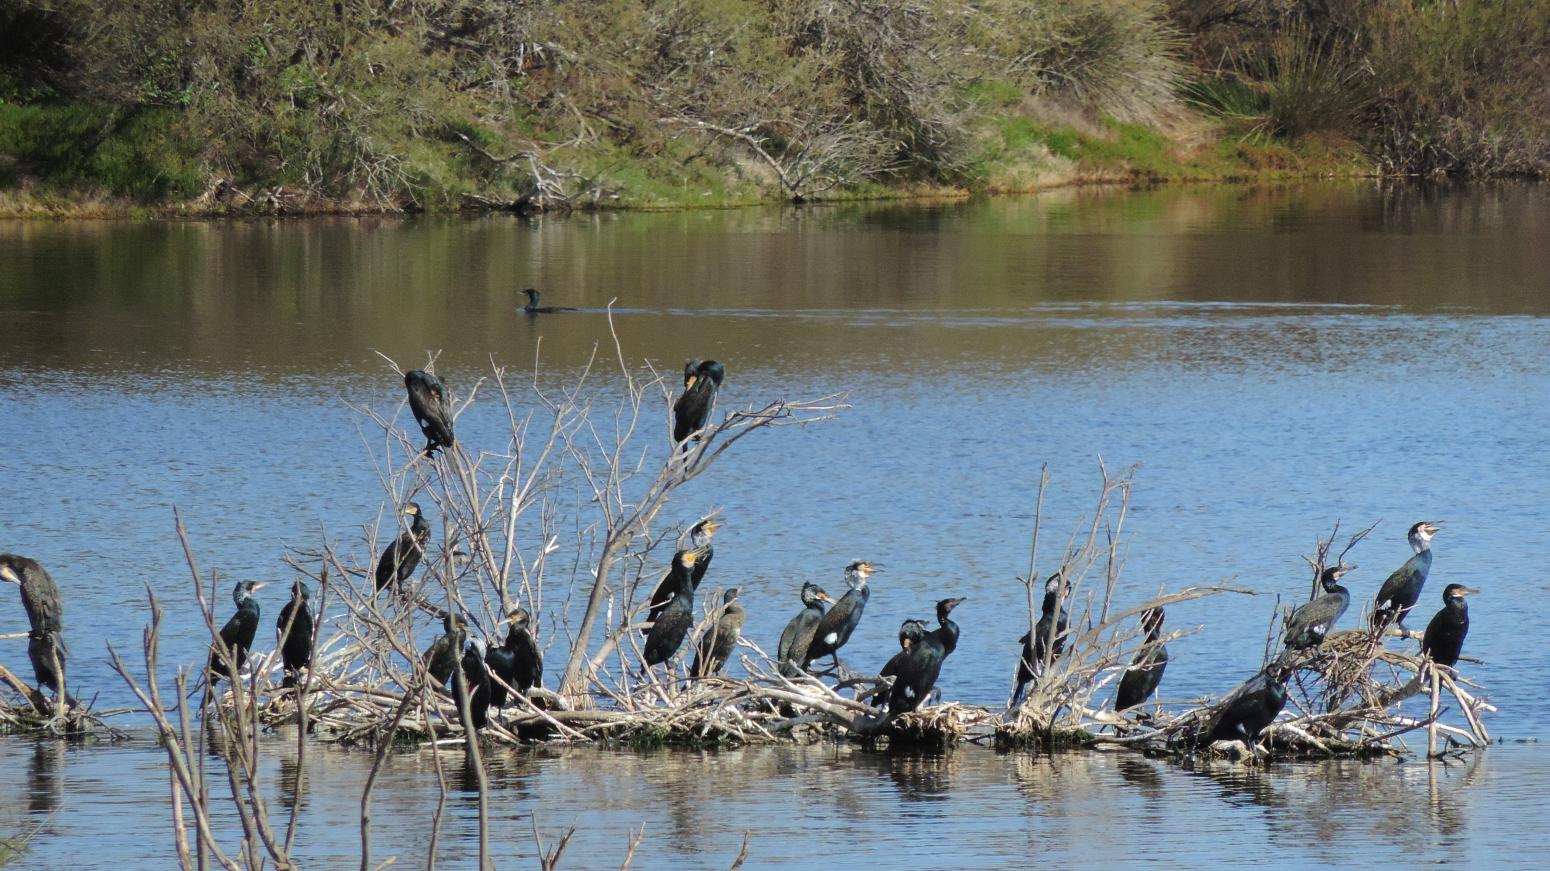 13. Cormoranes grandes (Phalacrocorax carbo)